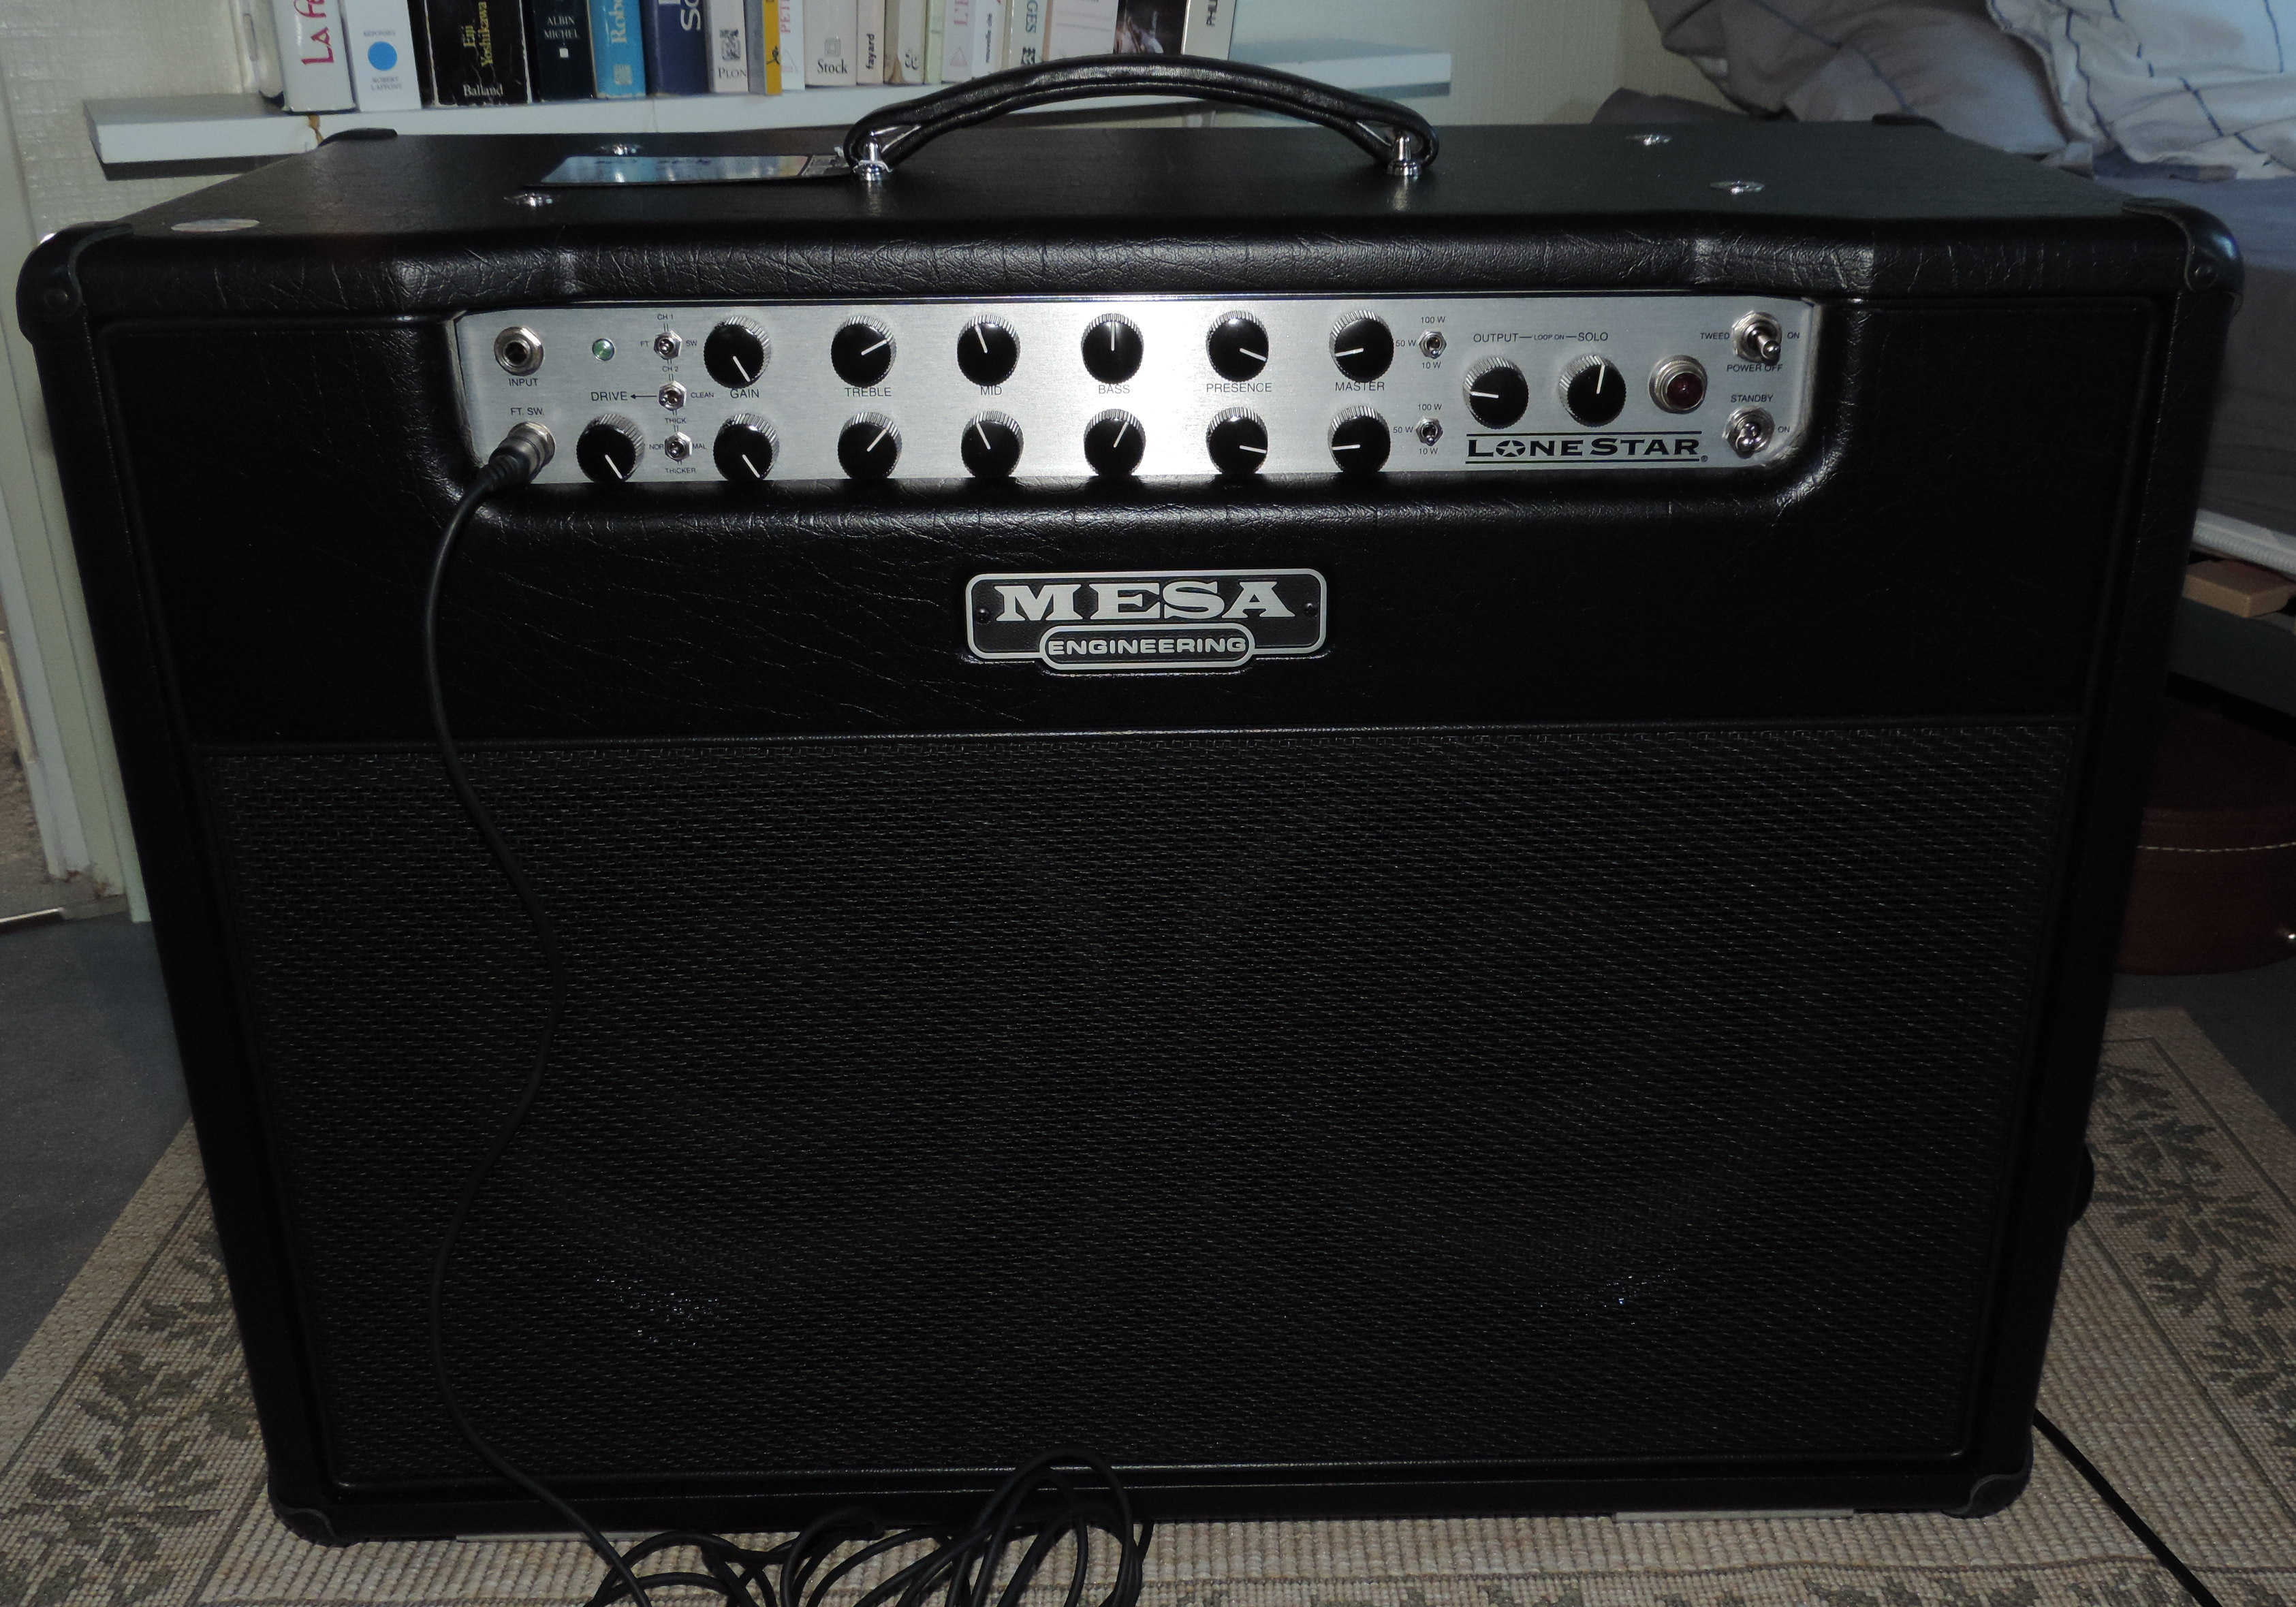 Mesa boogie lone star 2x12 combo image 967325 for Mesa boogie lonestar 2x12